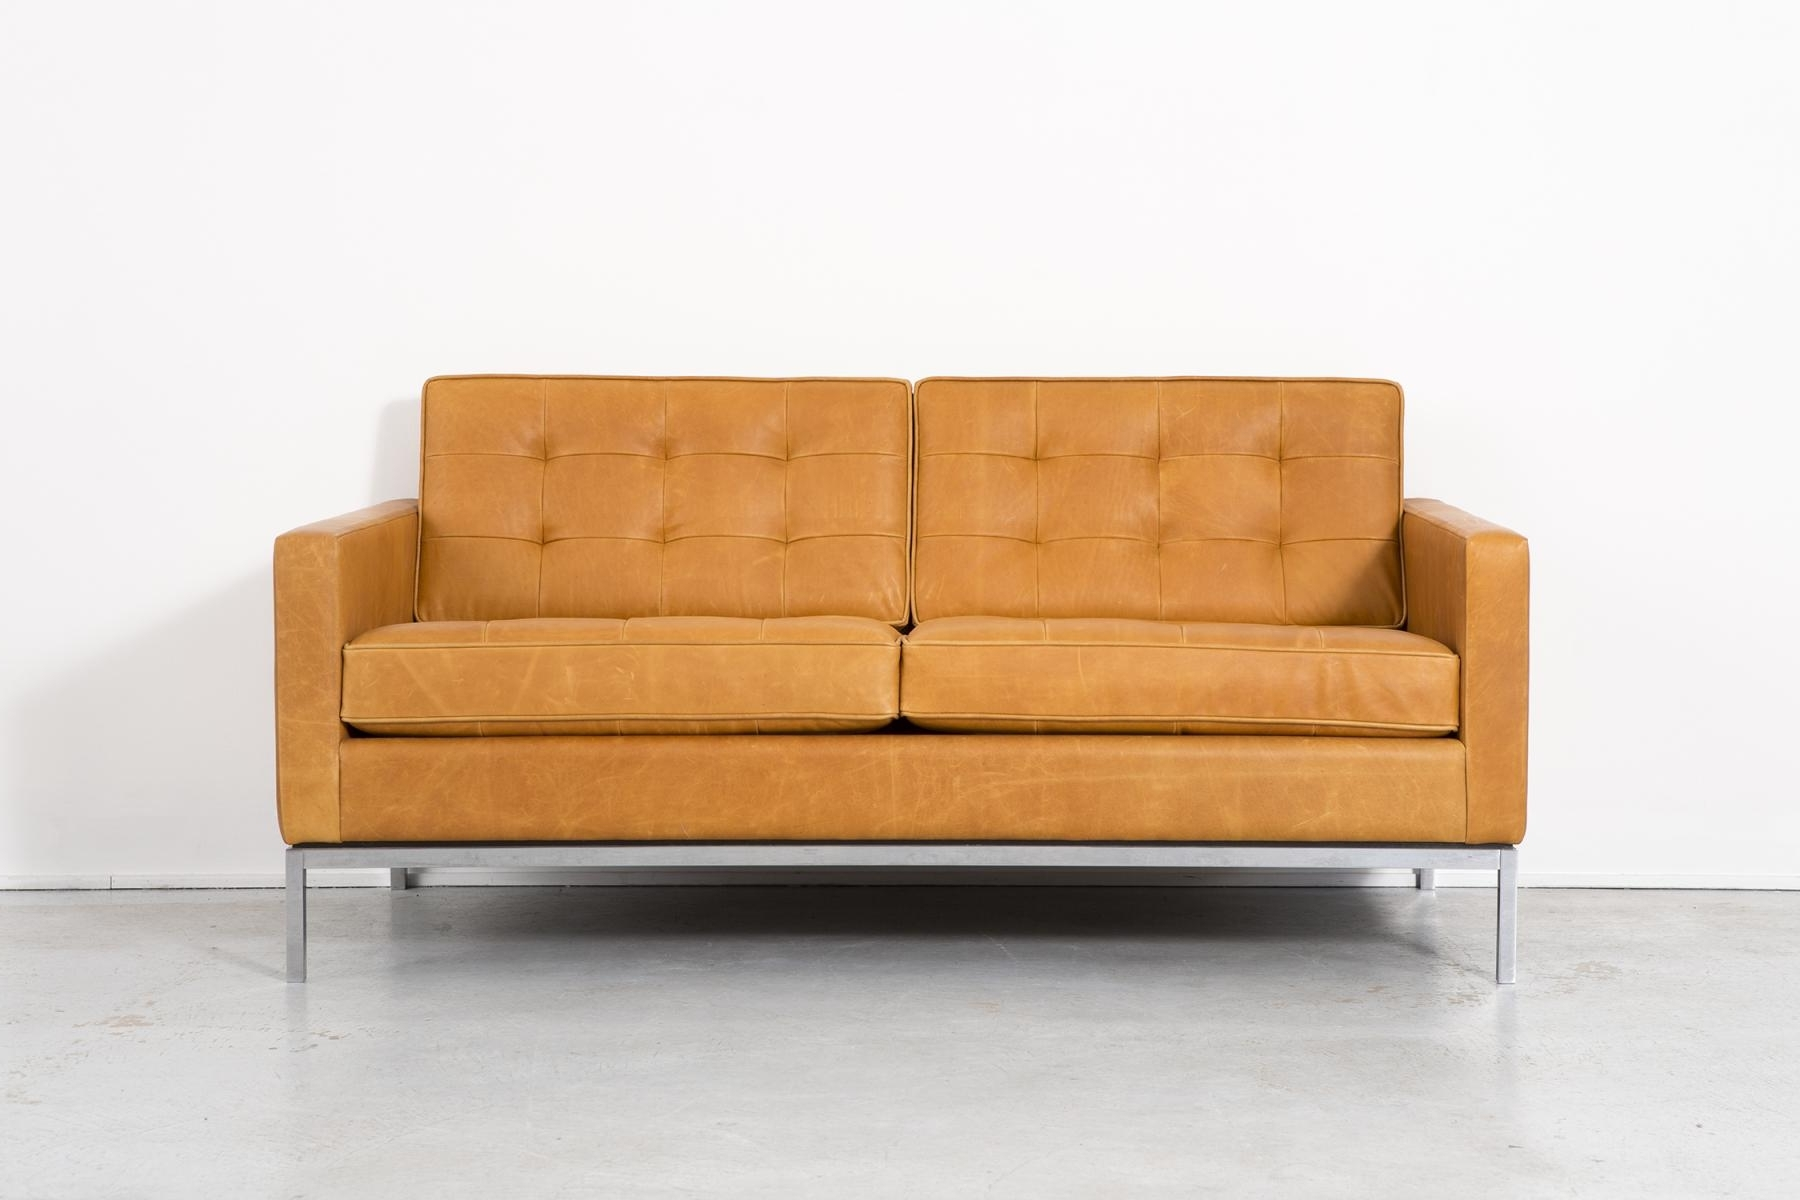 Leather Sofaflorence Knoll Bassett For Knoll, 1970S For Sale Pertaining To Best And Newest Florence Leather Sofas (View 7 of 15)